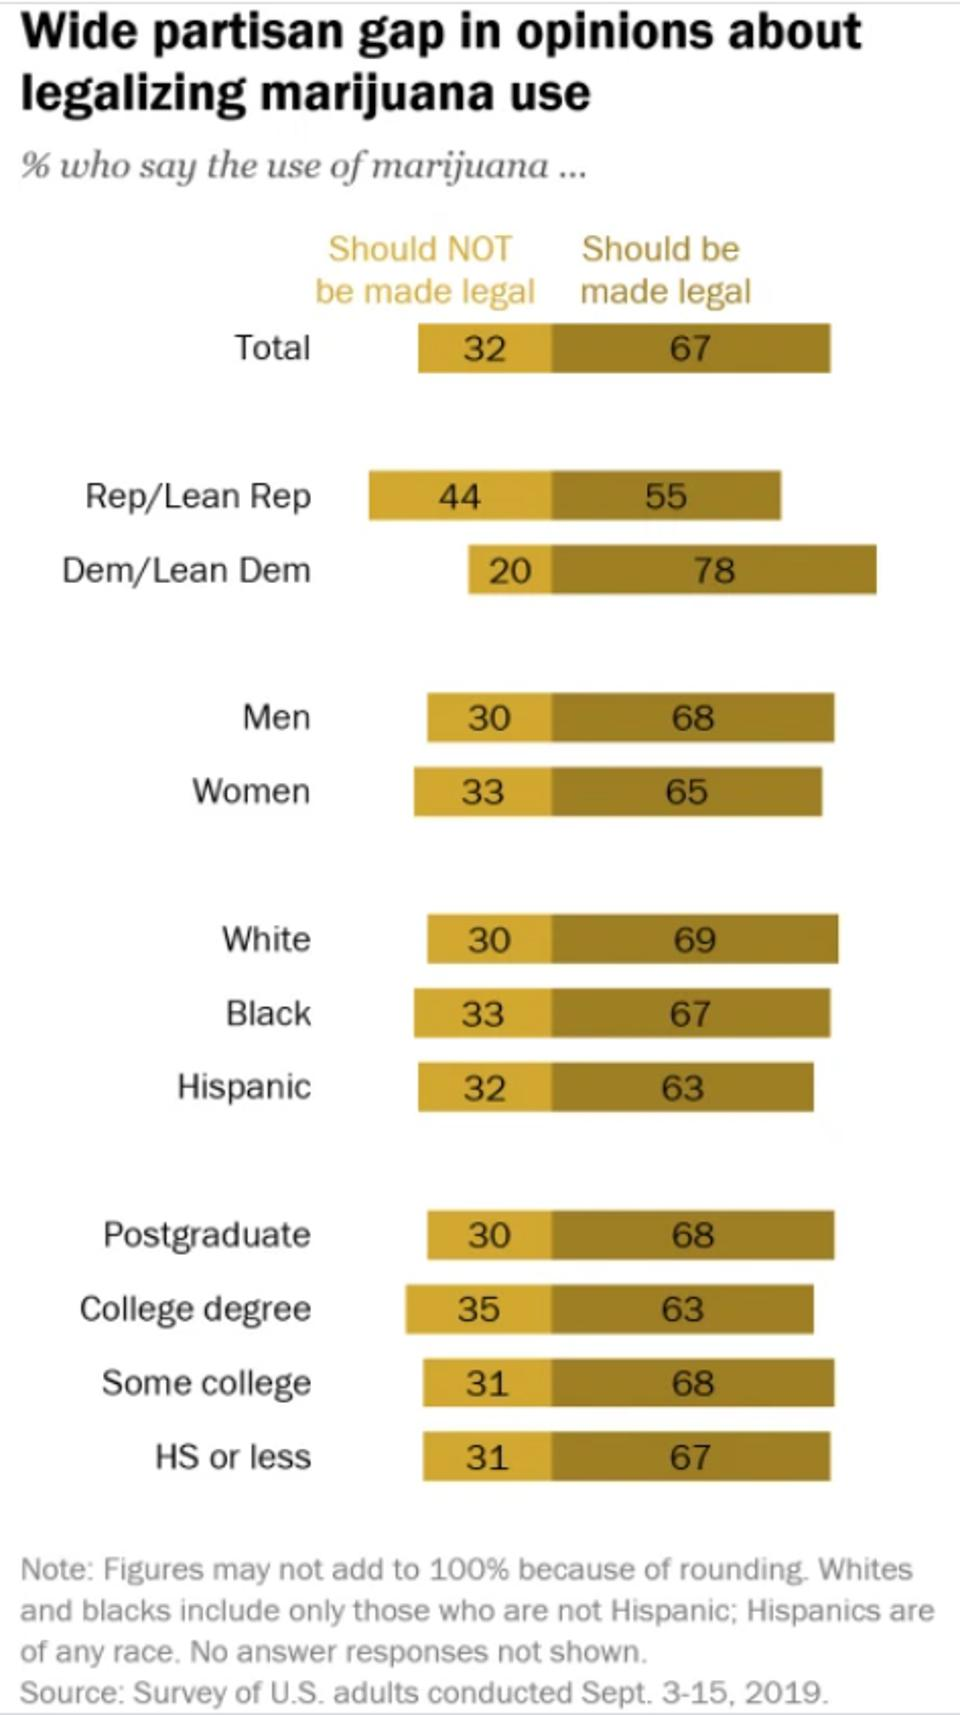 Two-tone brown bar graphs show a spectrum of support for cannabis legalization.